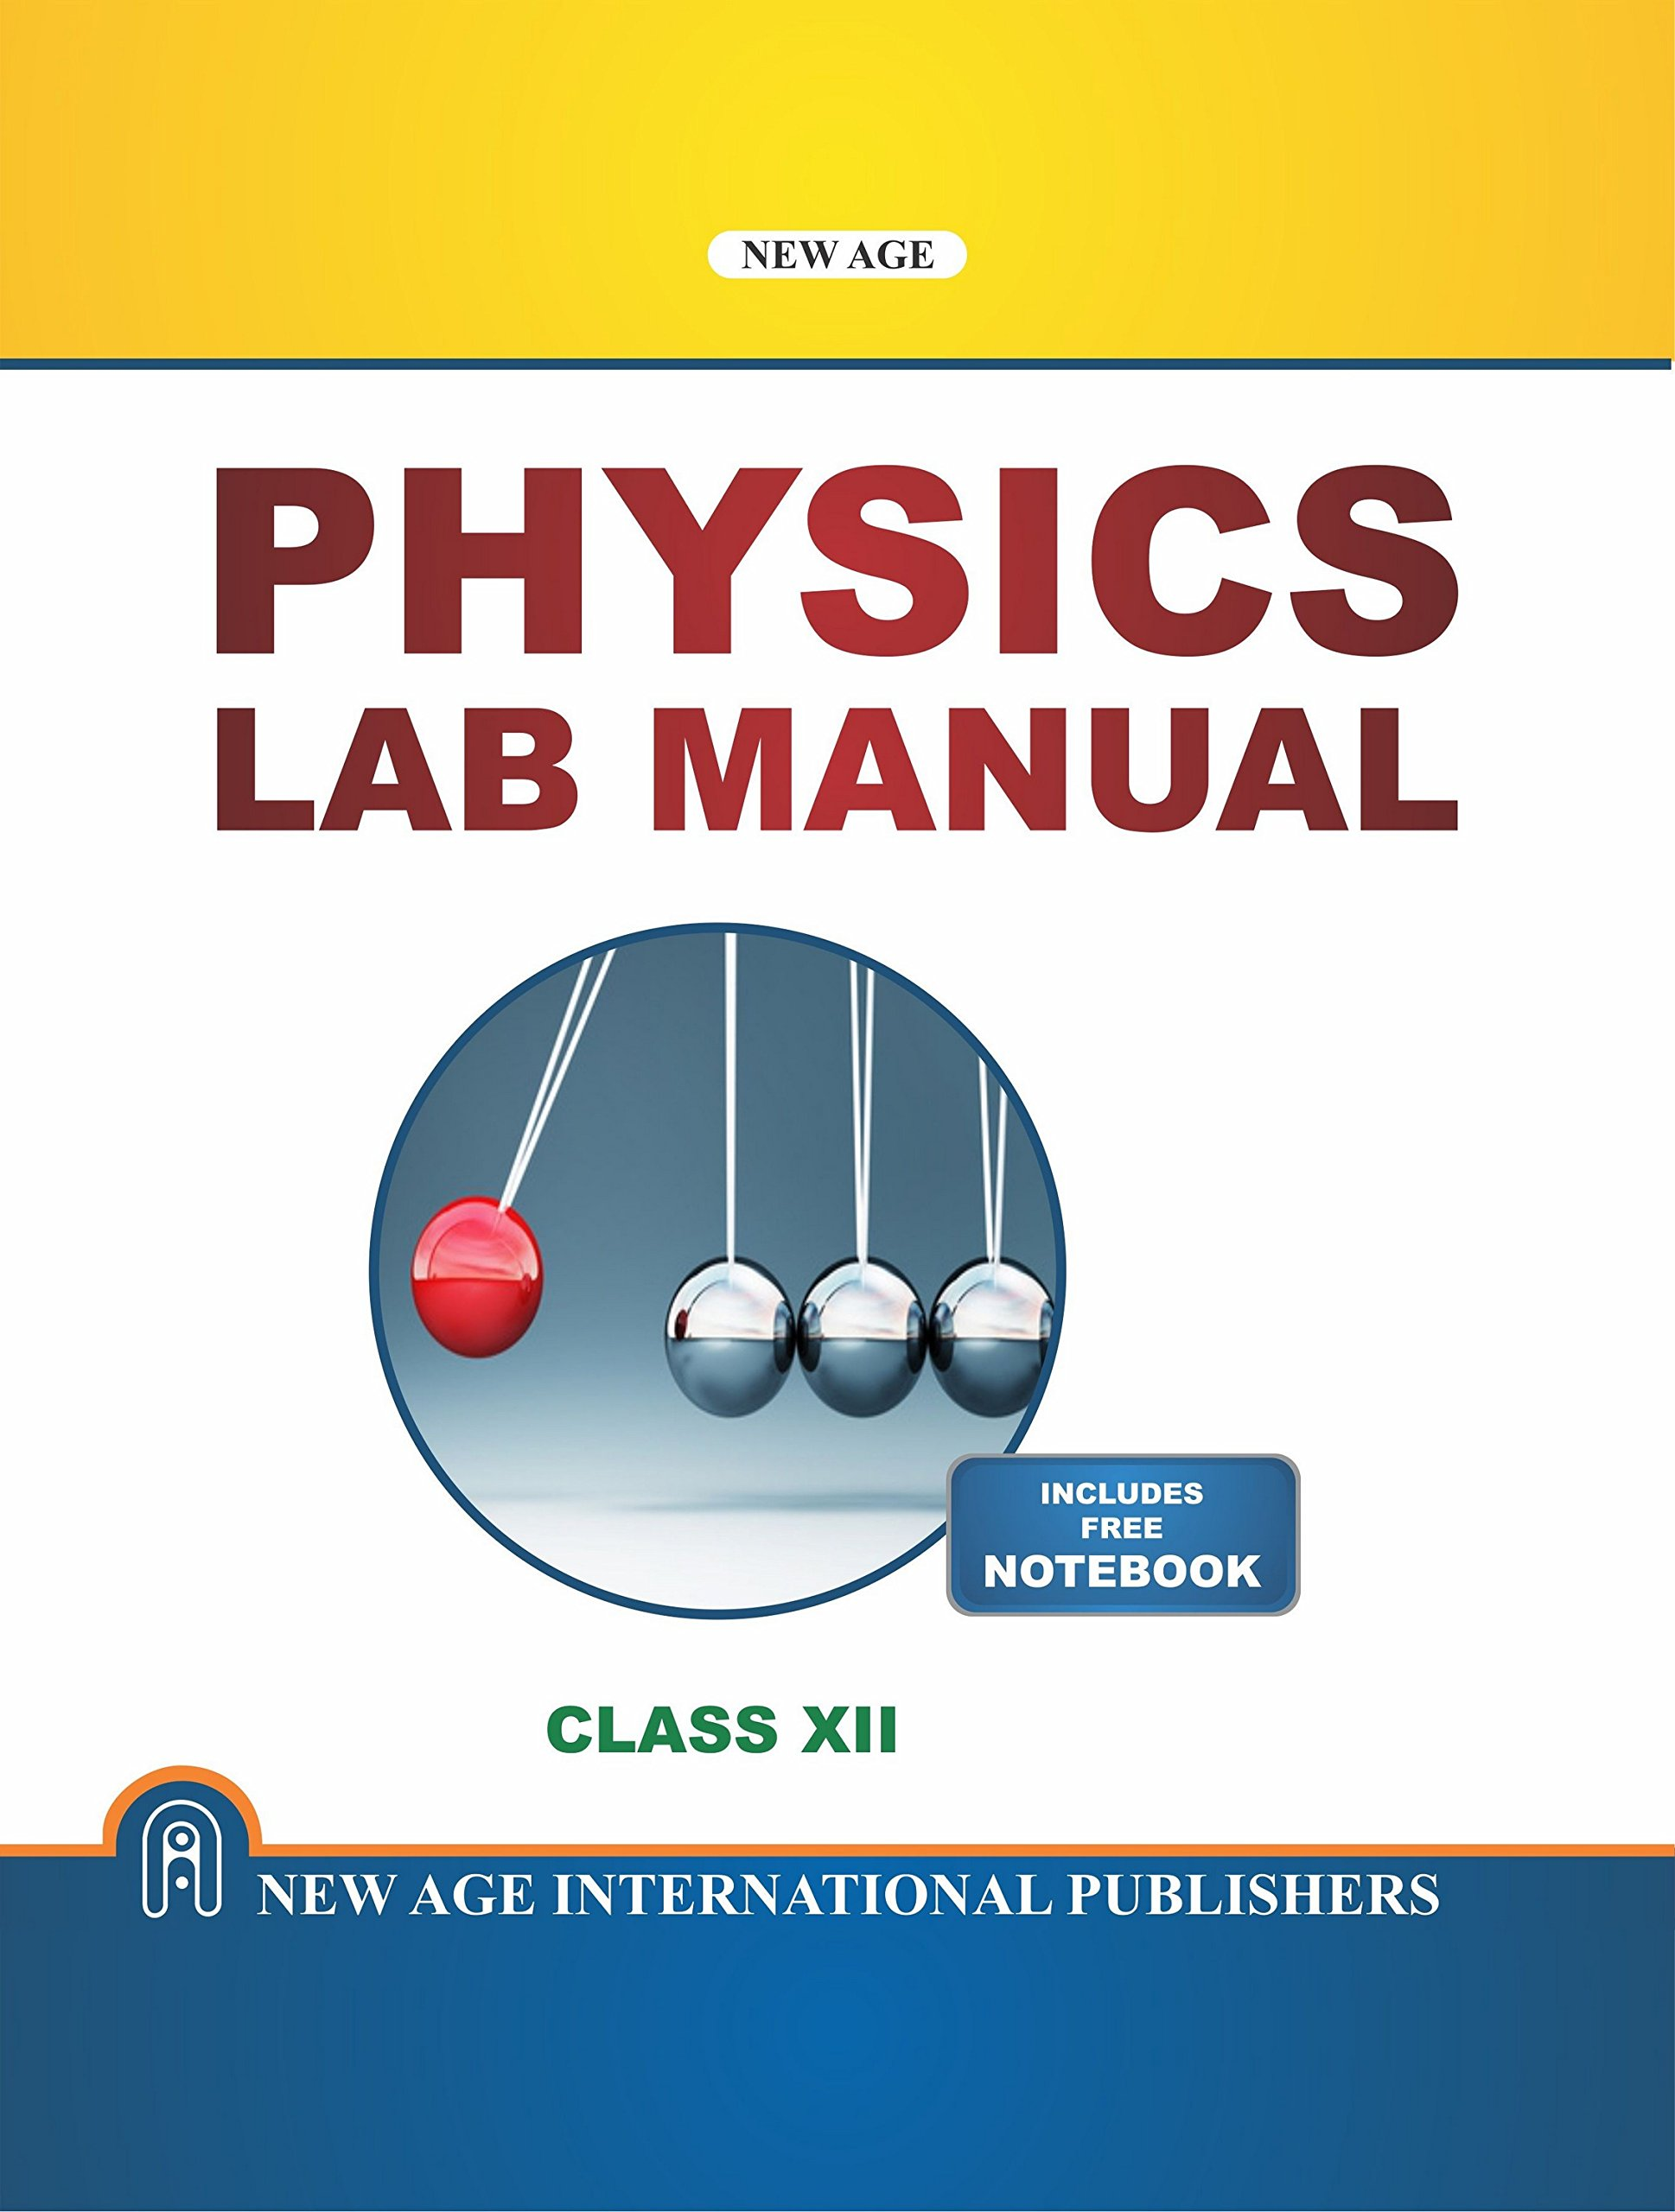 Physics lab manual class 9 by evergreen.